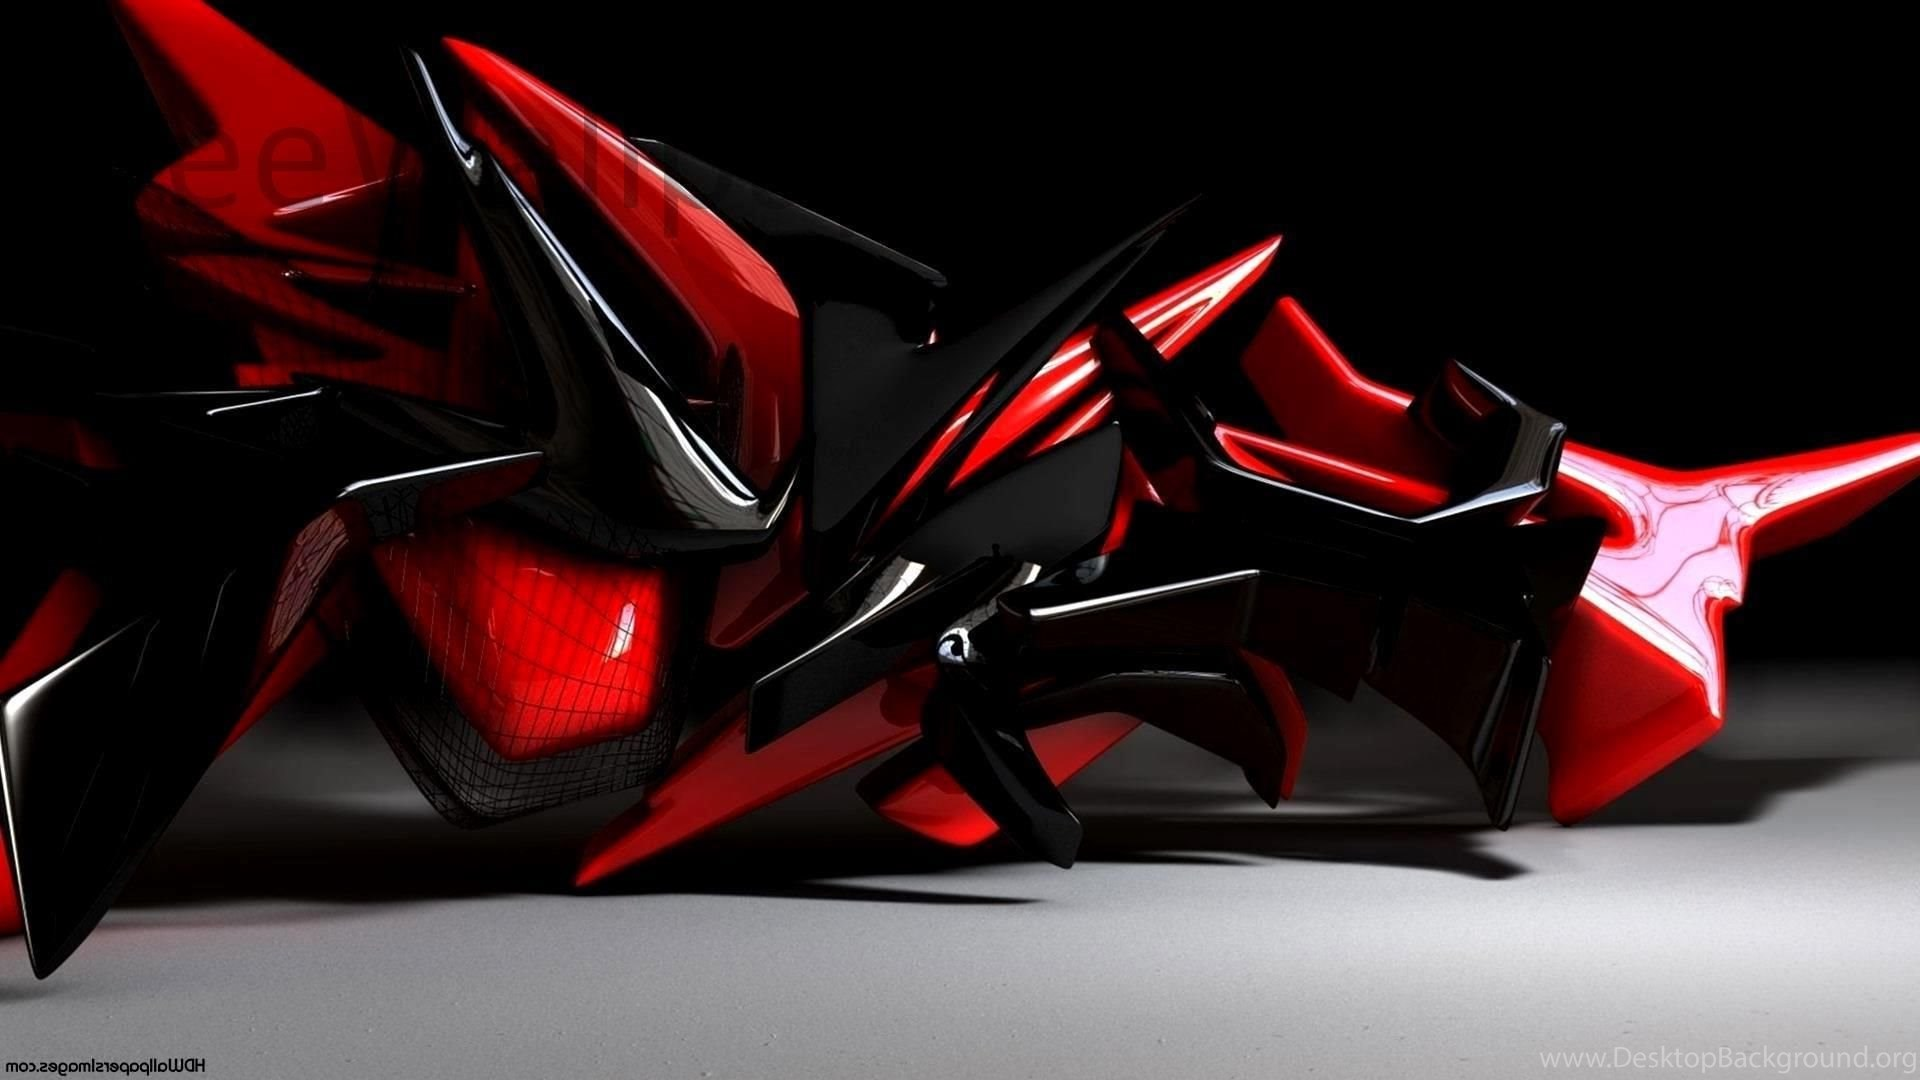 3d abstract wallpapers hd 1080p download, free hd wallpapers free